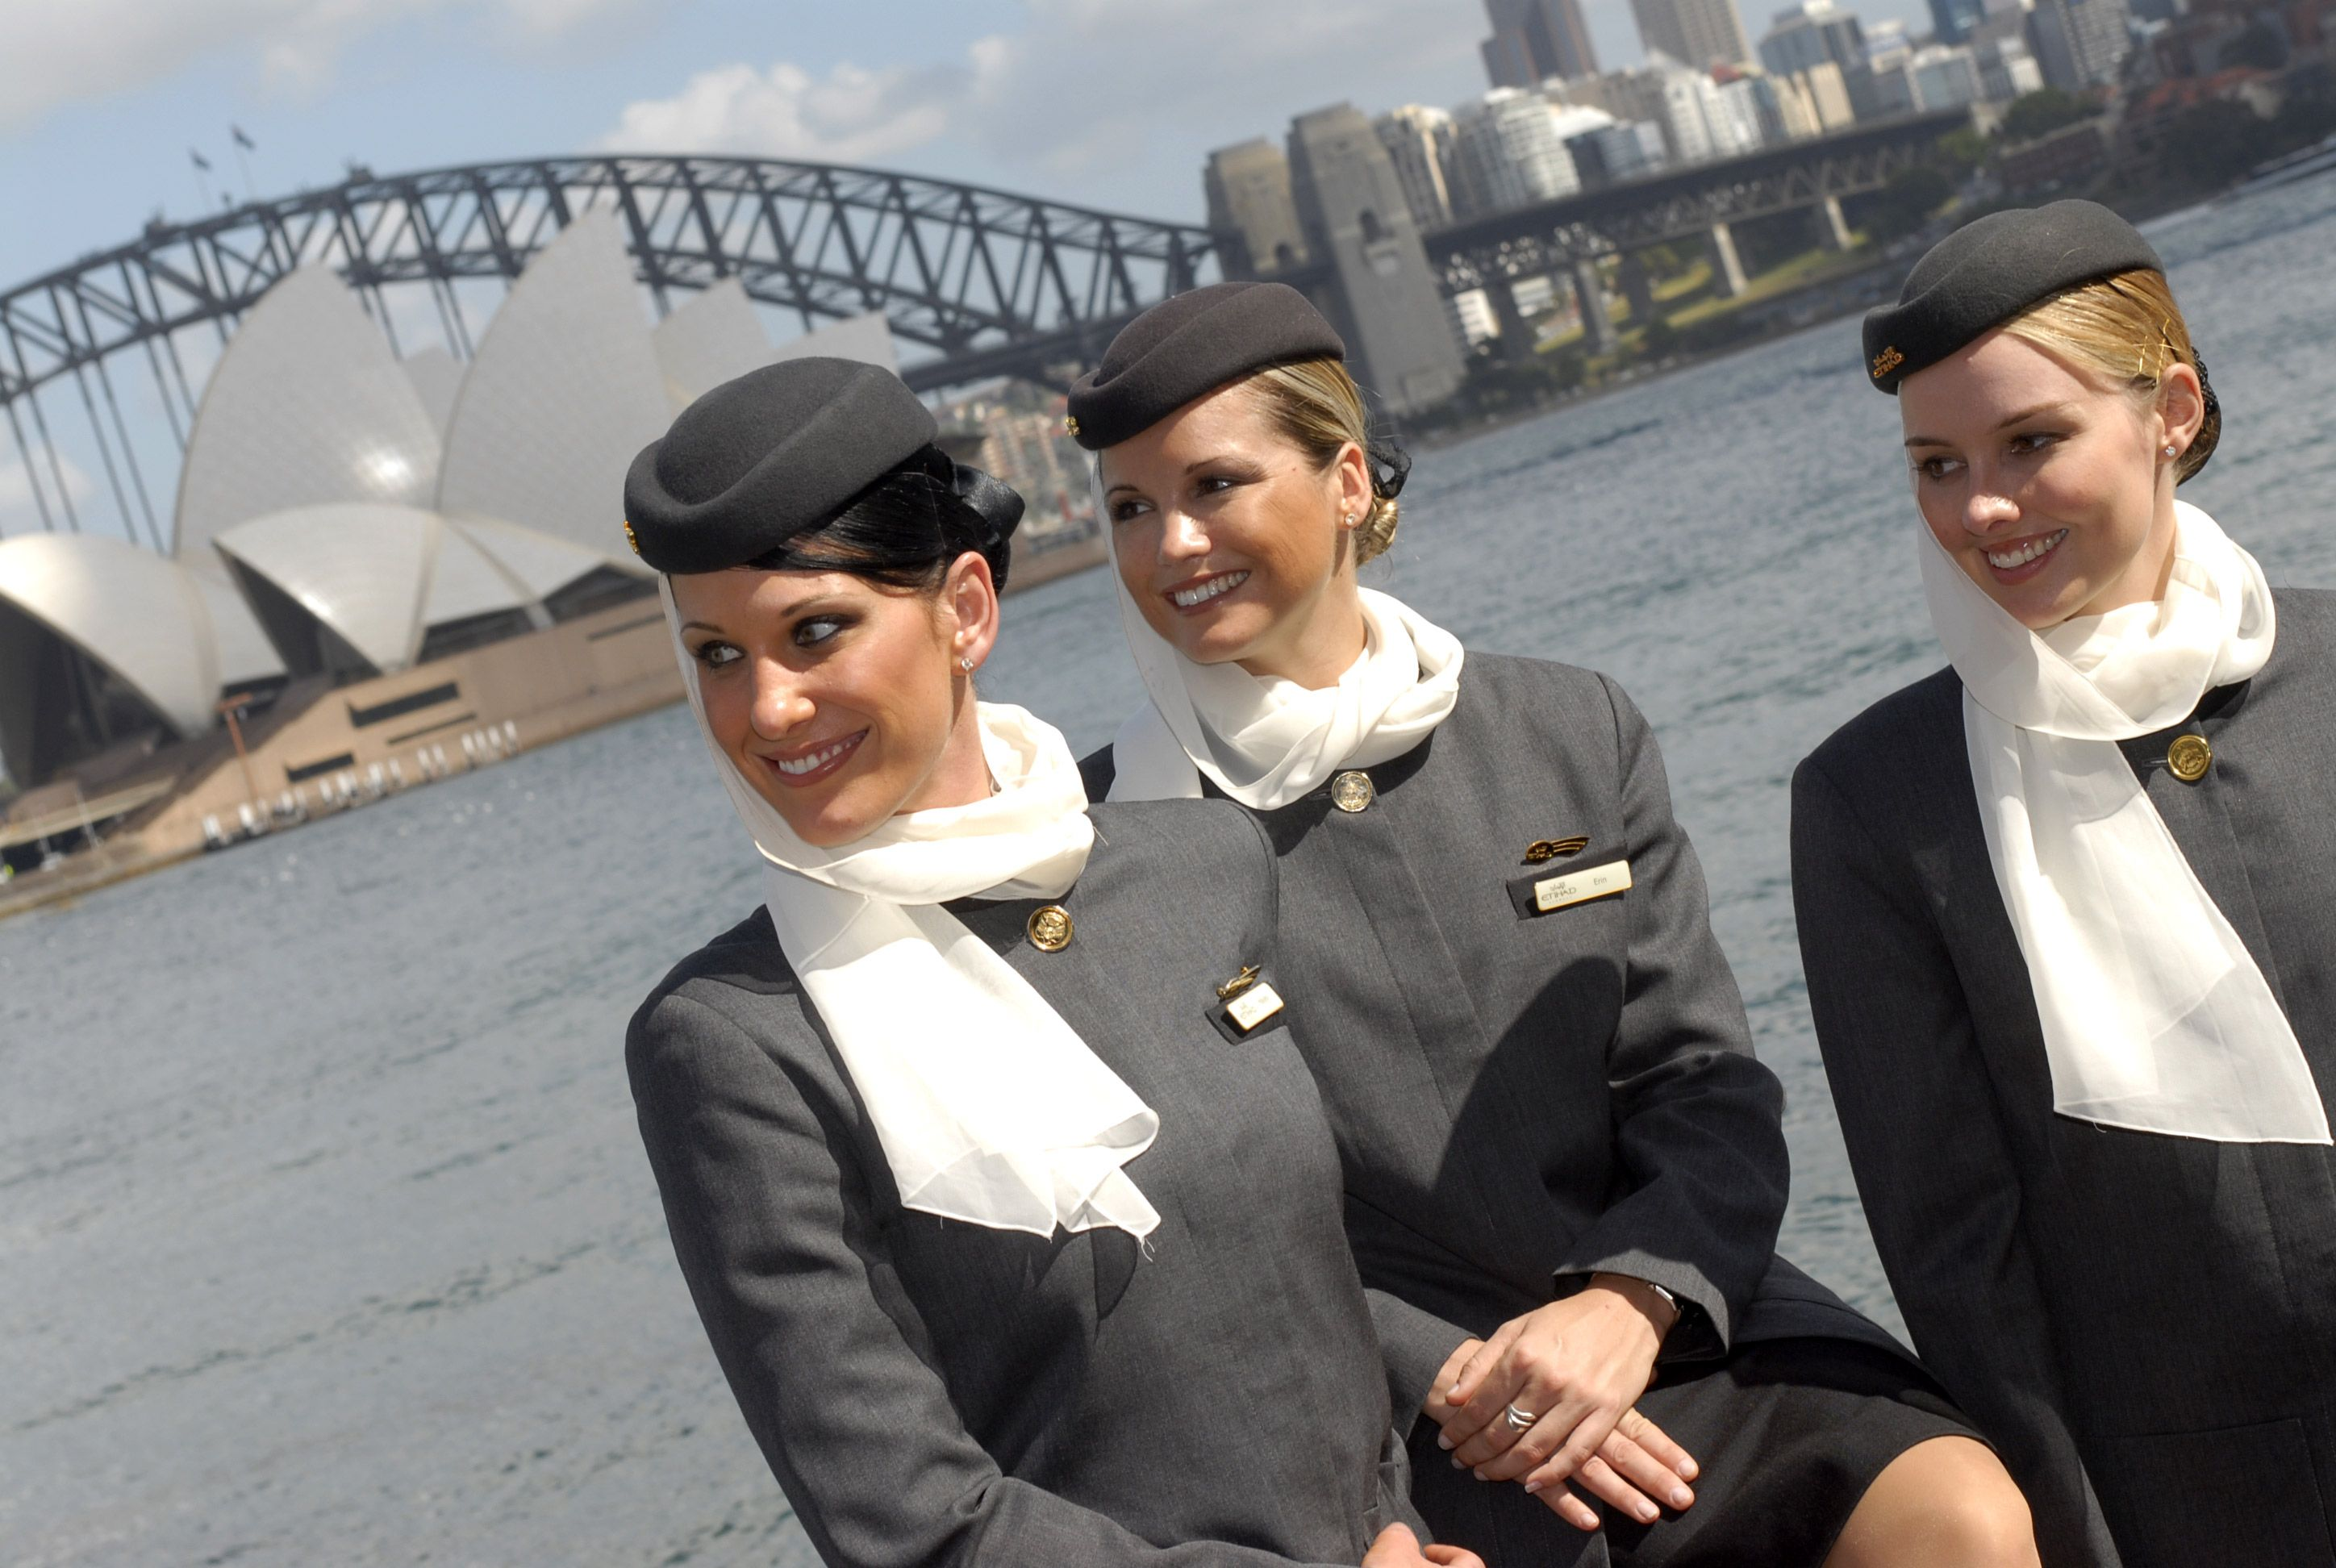 etihad flight attendant uniform to be i want to and lady etihad flight attendants